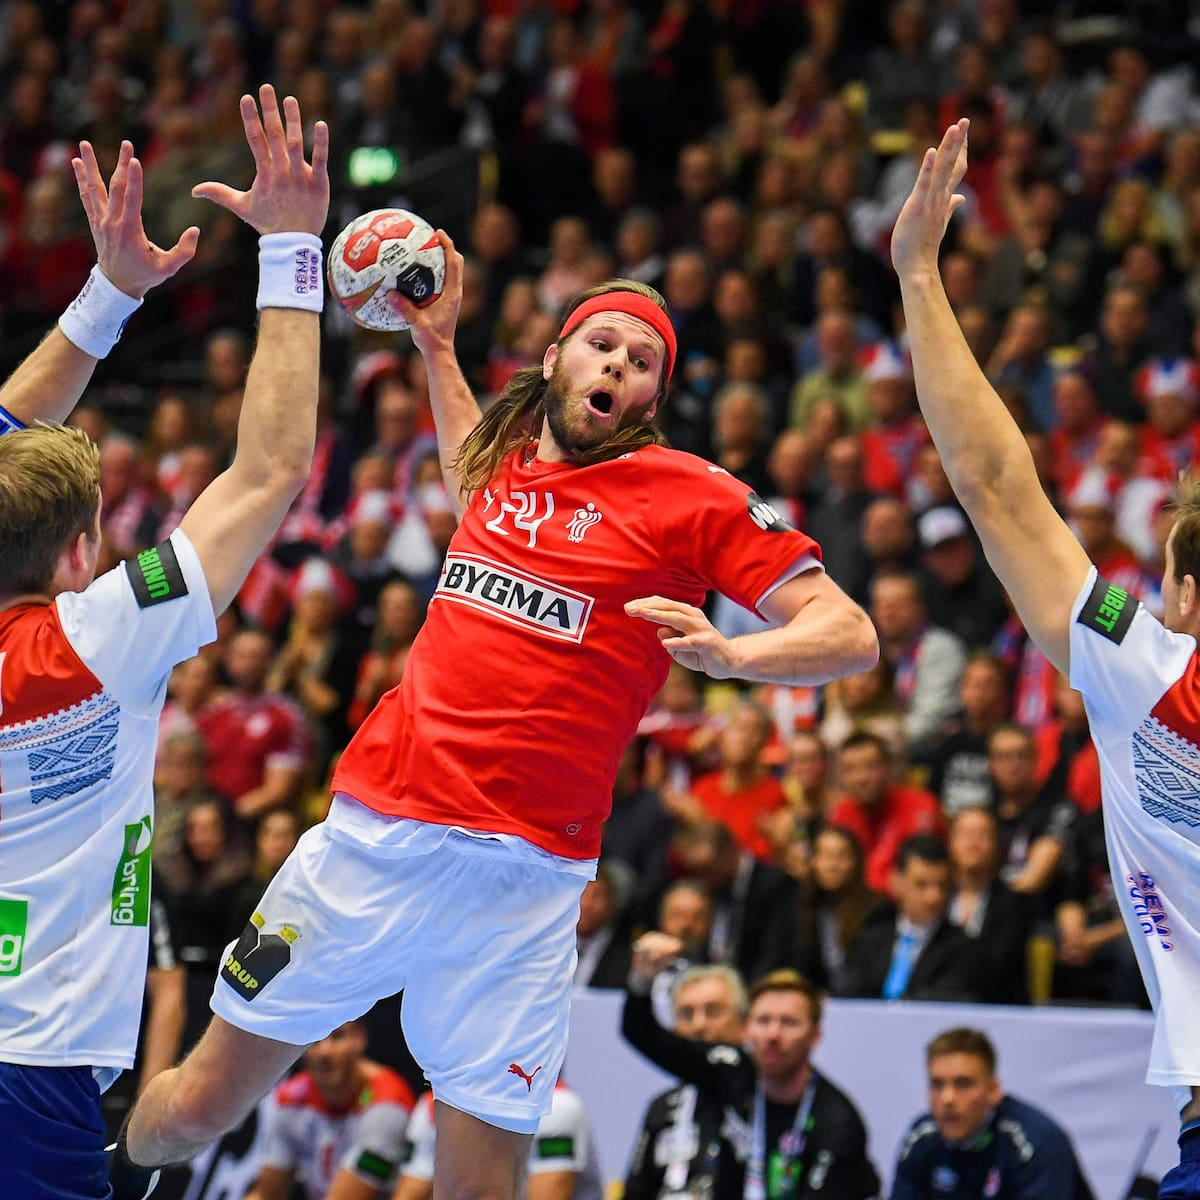 favoriten handball wm 2019